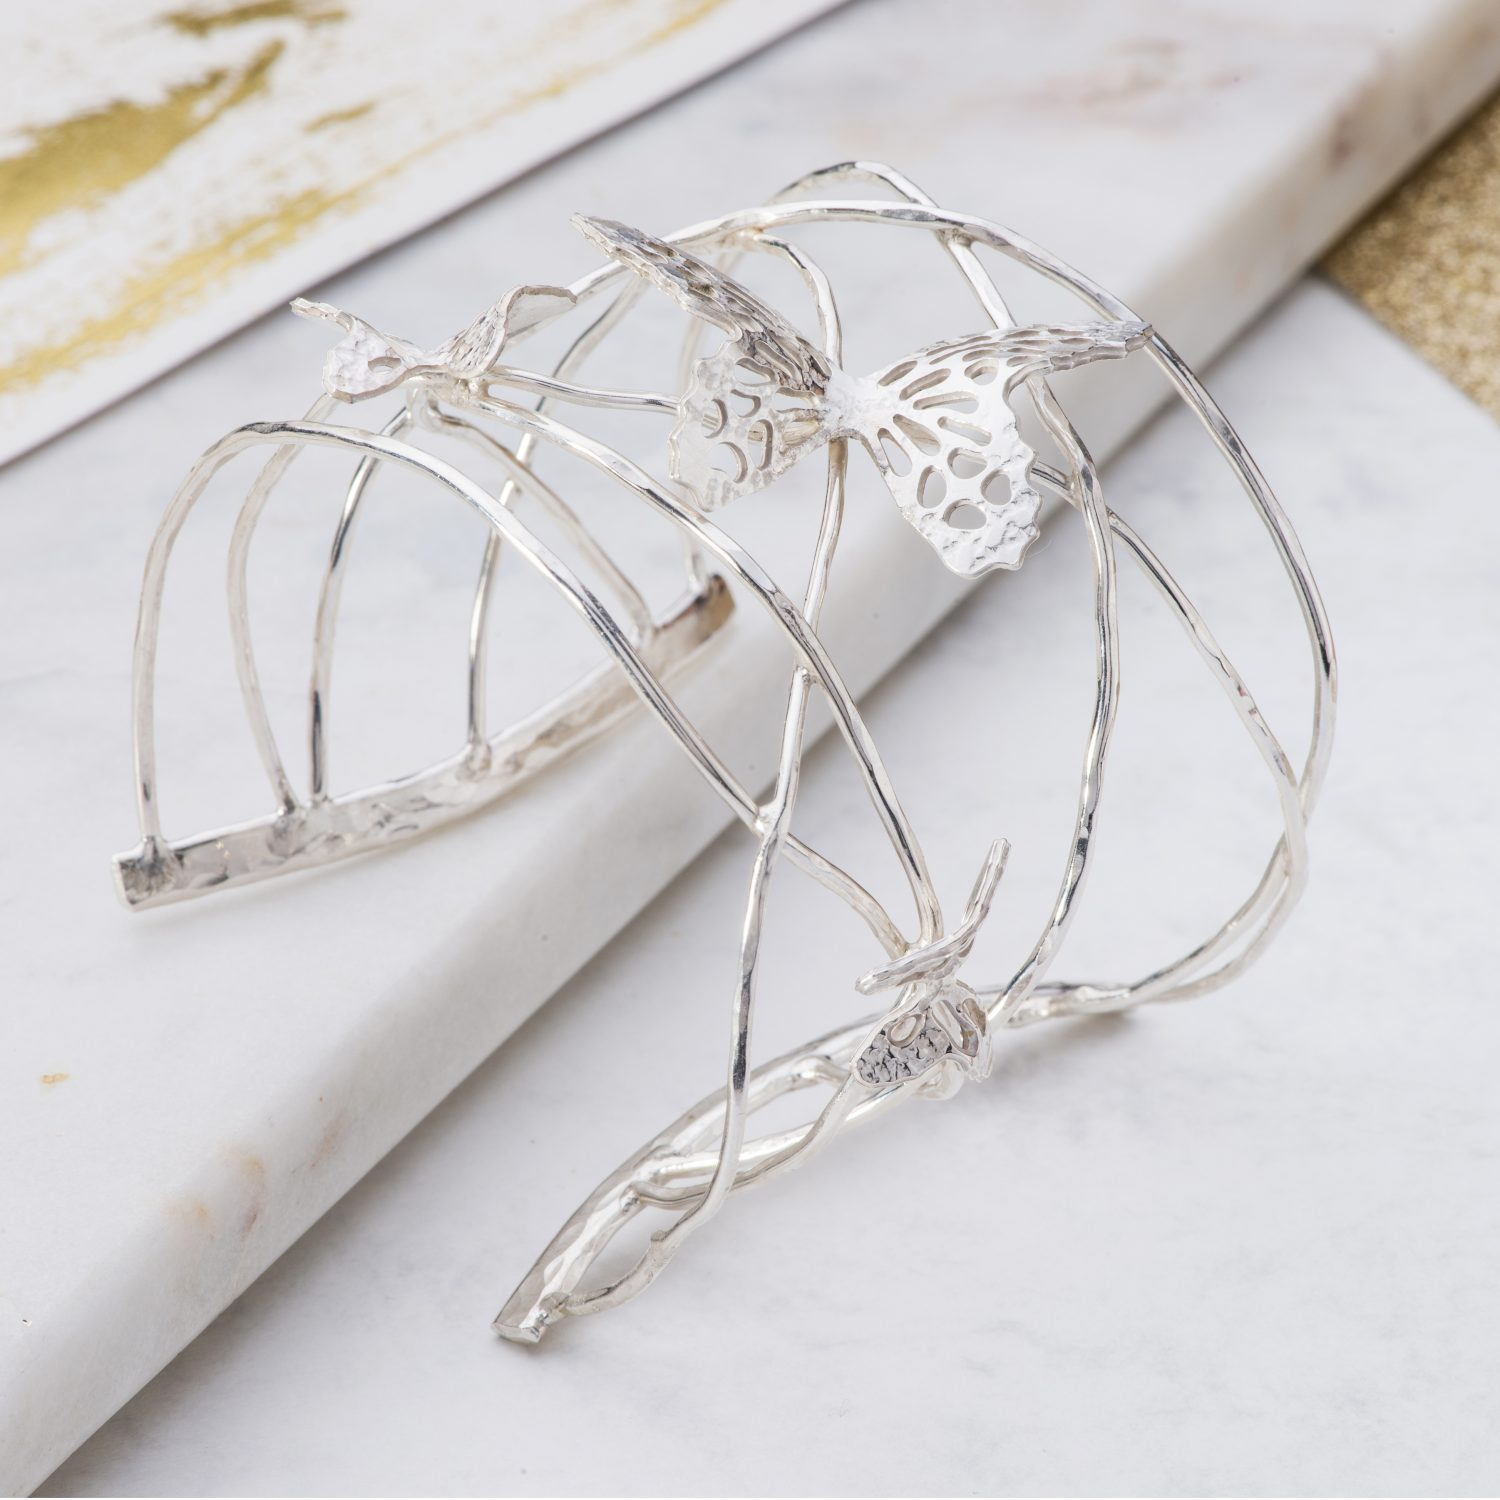 Butterfly cuff with twisted wires in silver